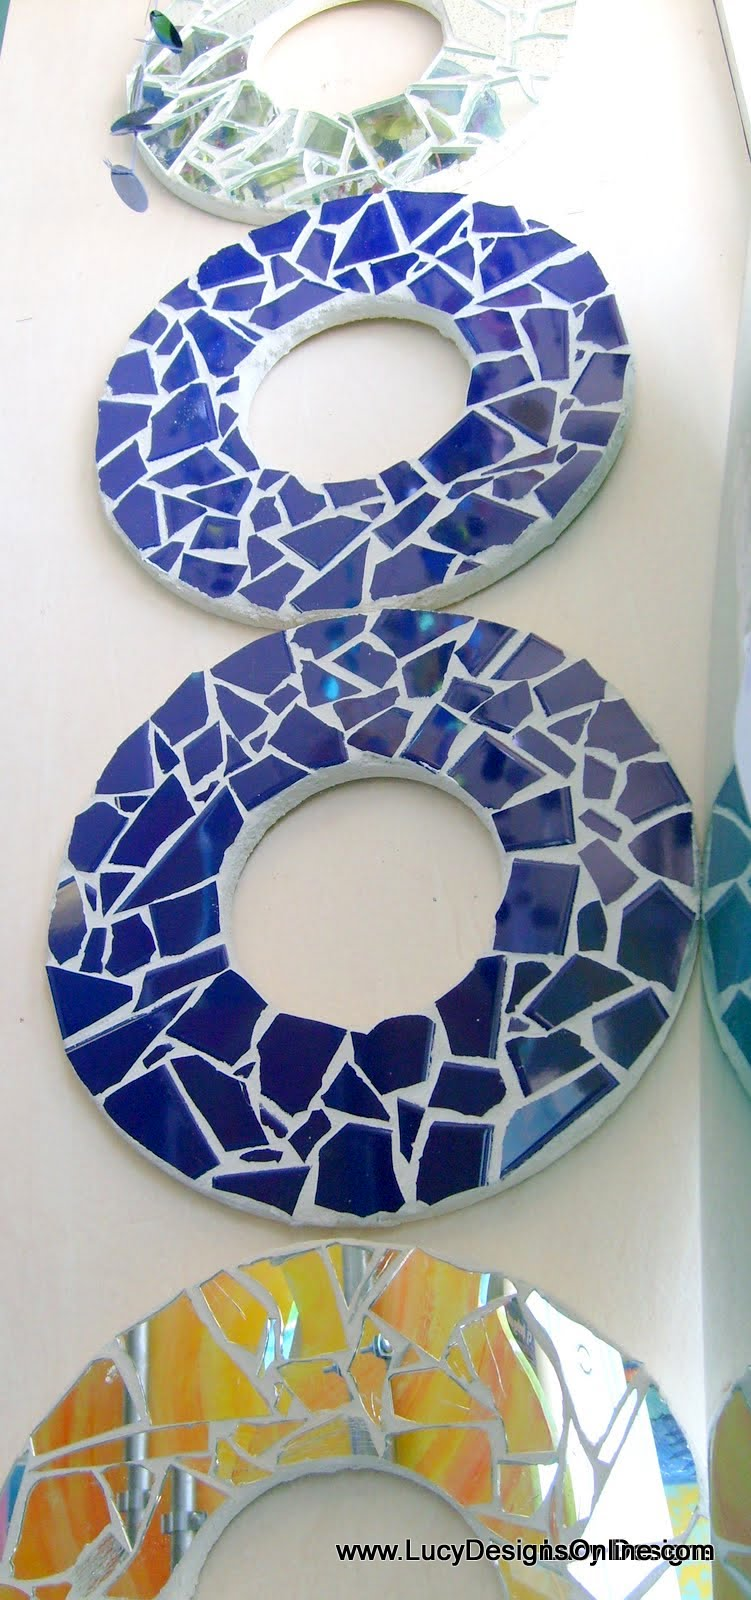 ceramic tile mosaic circle wall art